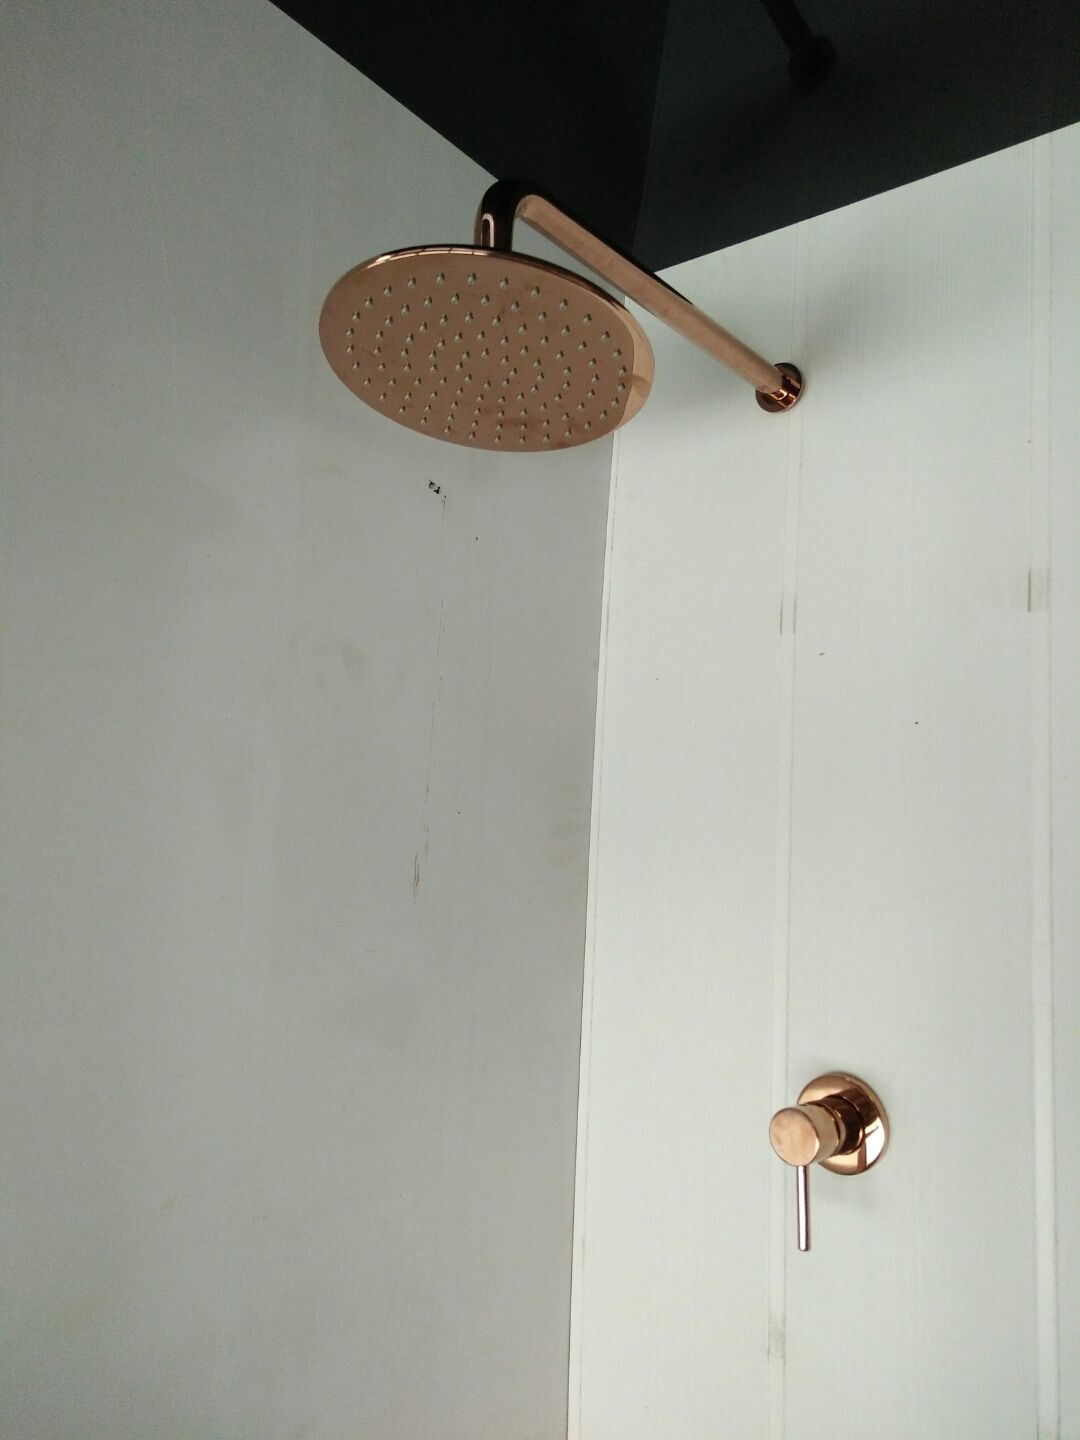 details about rose gold copper gold shower head set 200 mm round wall ceiling arm u0026 wall mixer